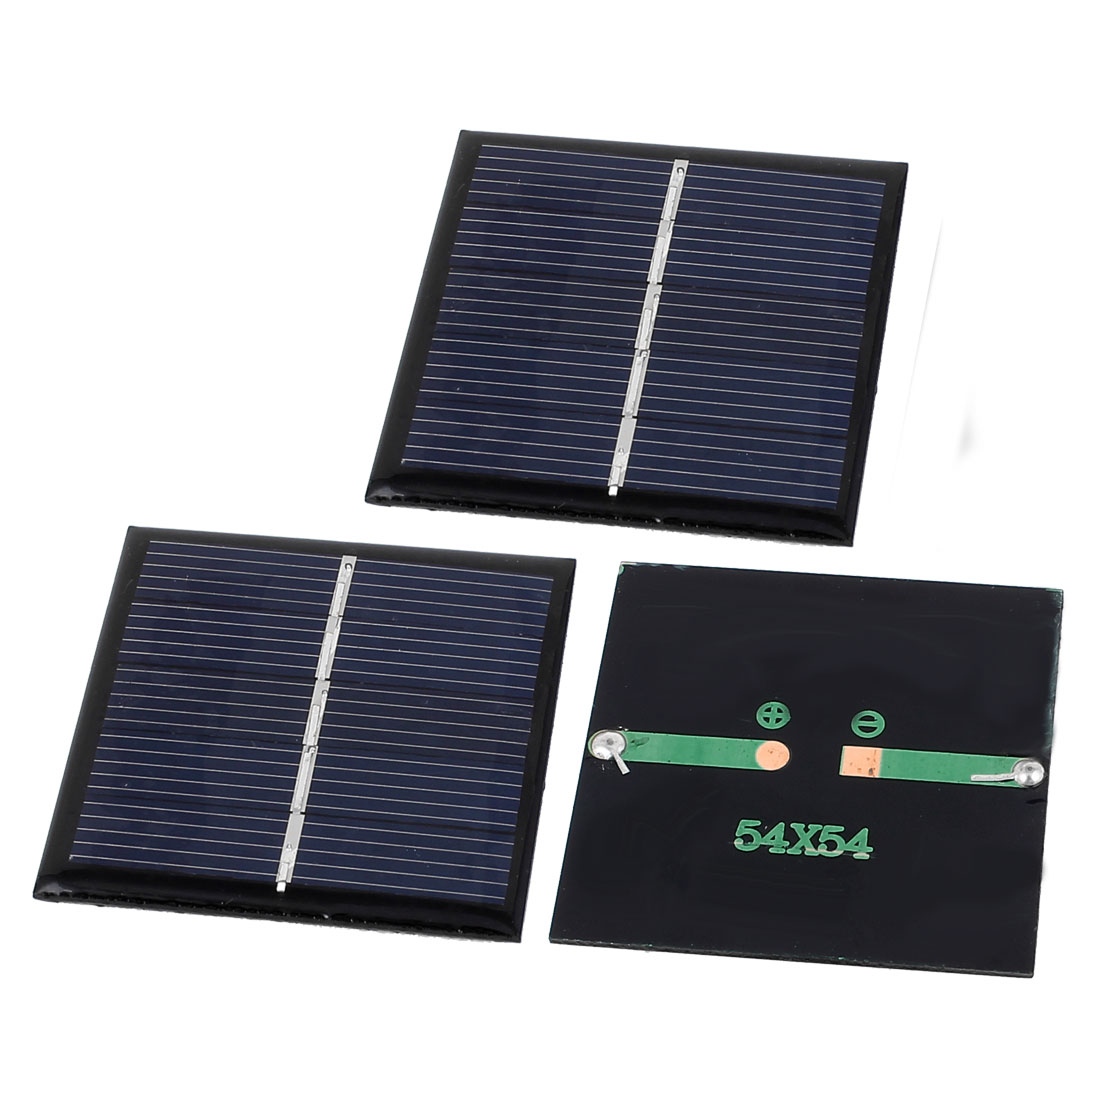 3 Pcs 2.5V 168mA 0.42W DIY Polycrystallinesilicon Solar Panel Cell Battery Charger 54mm x 54mm